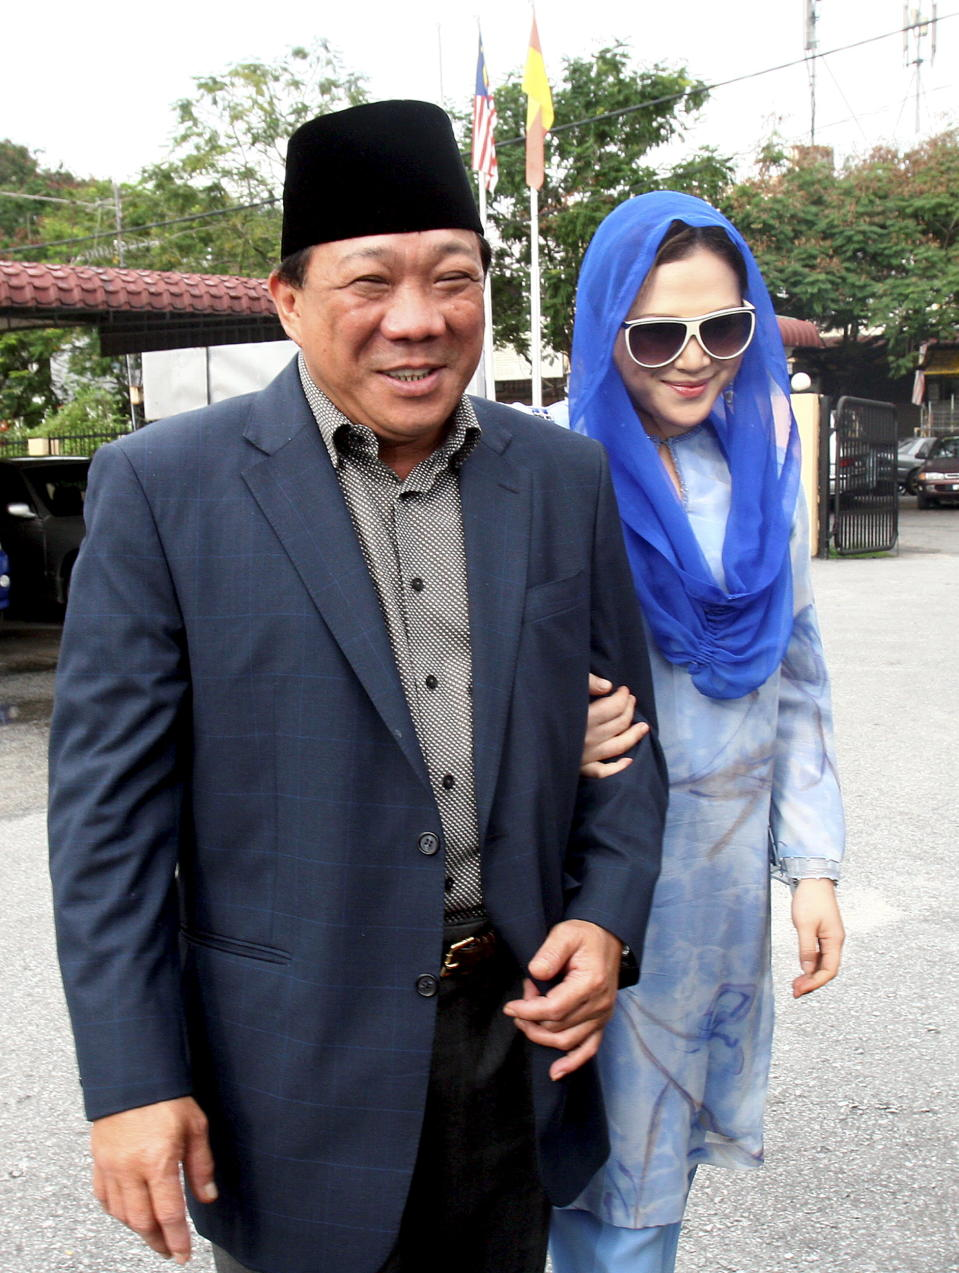 This photo taken on May 19, 2010 shows Malaysian lawmaker Bung Mokhtar Radin (L) and his second wife Zizie Ezette (R) arriving at a Shariah court in Kuala Lumpur. (Photo credit should read AFP/AFP via Getty Images)